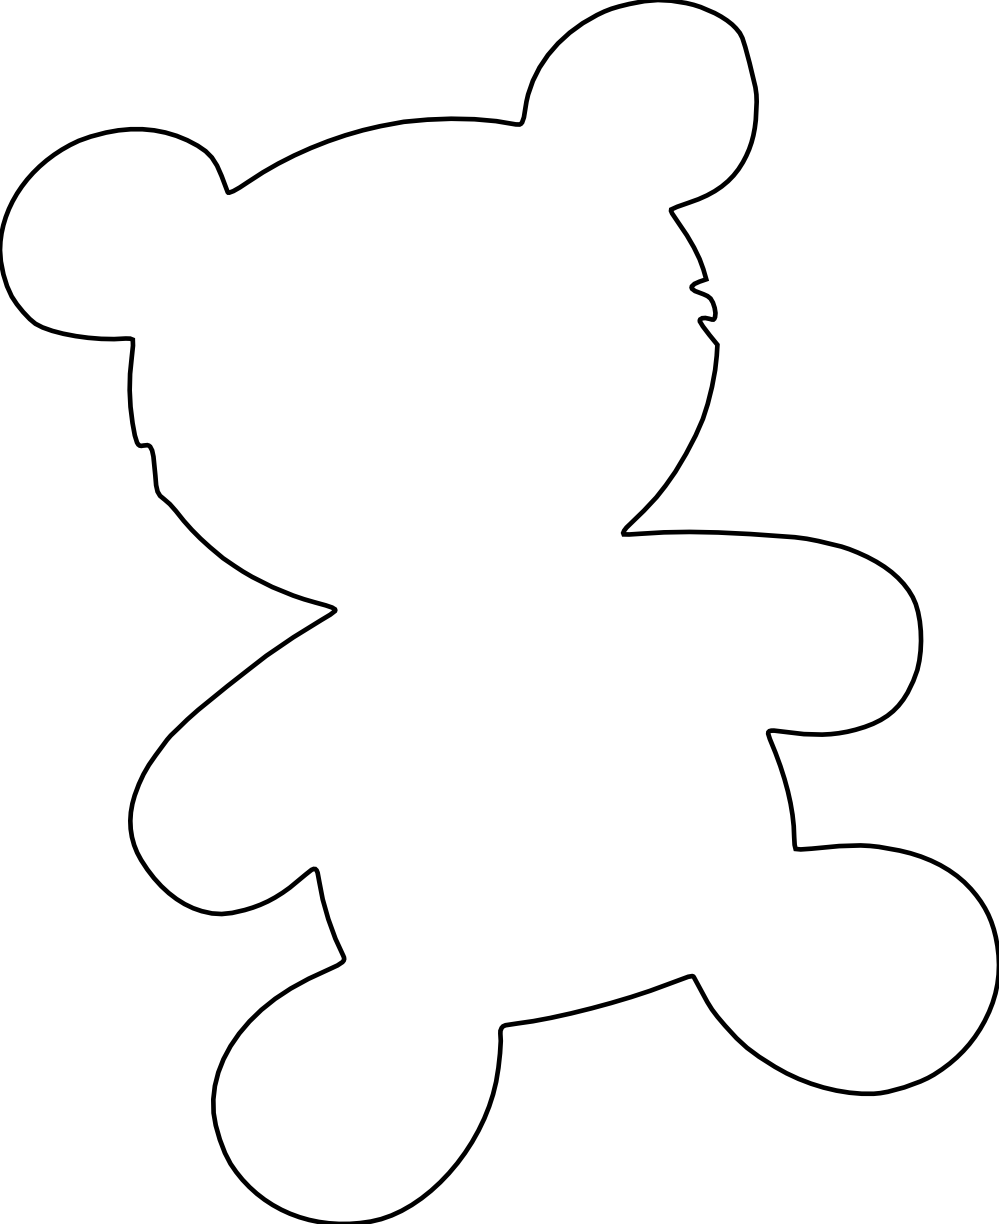 999x1224 Teddy Bear Outline Clipart, Free Teddy Bear Outline Clipart